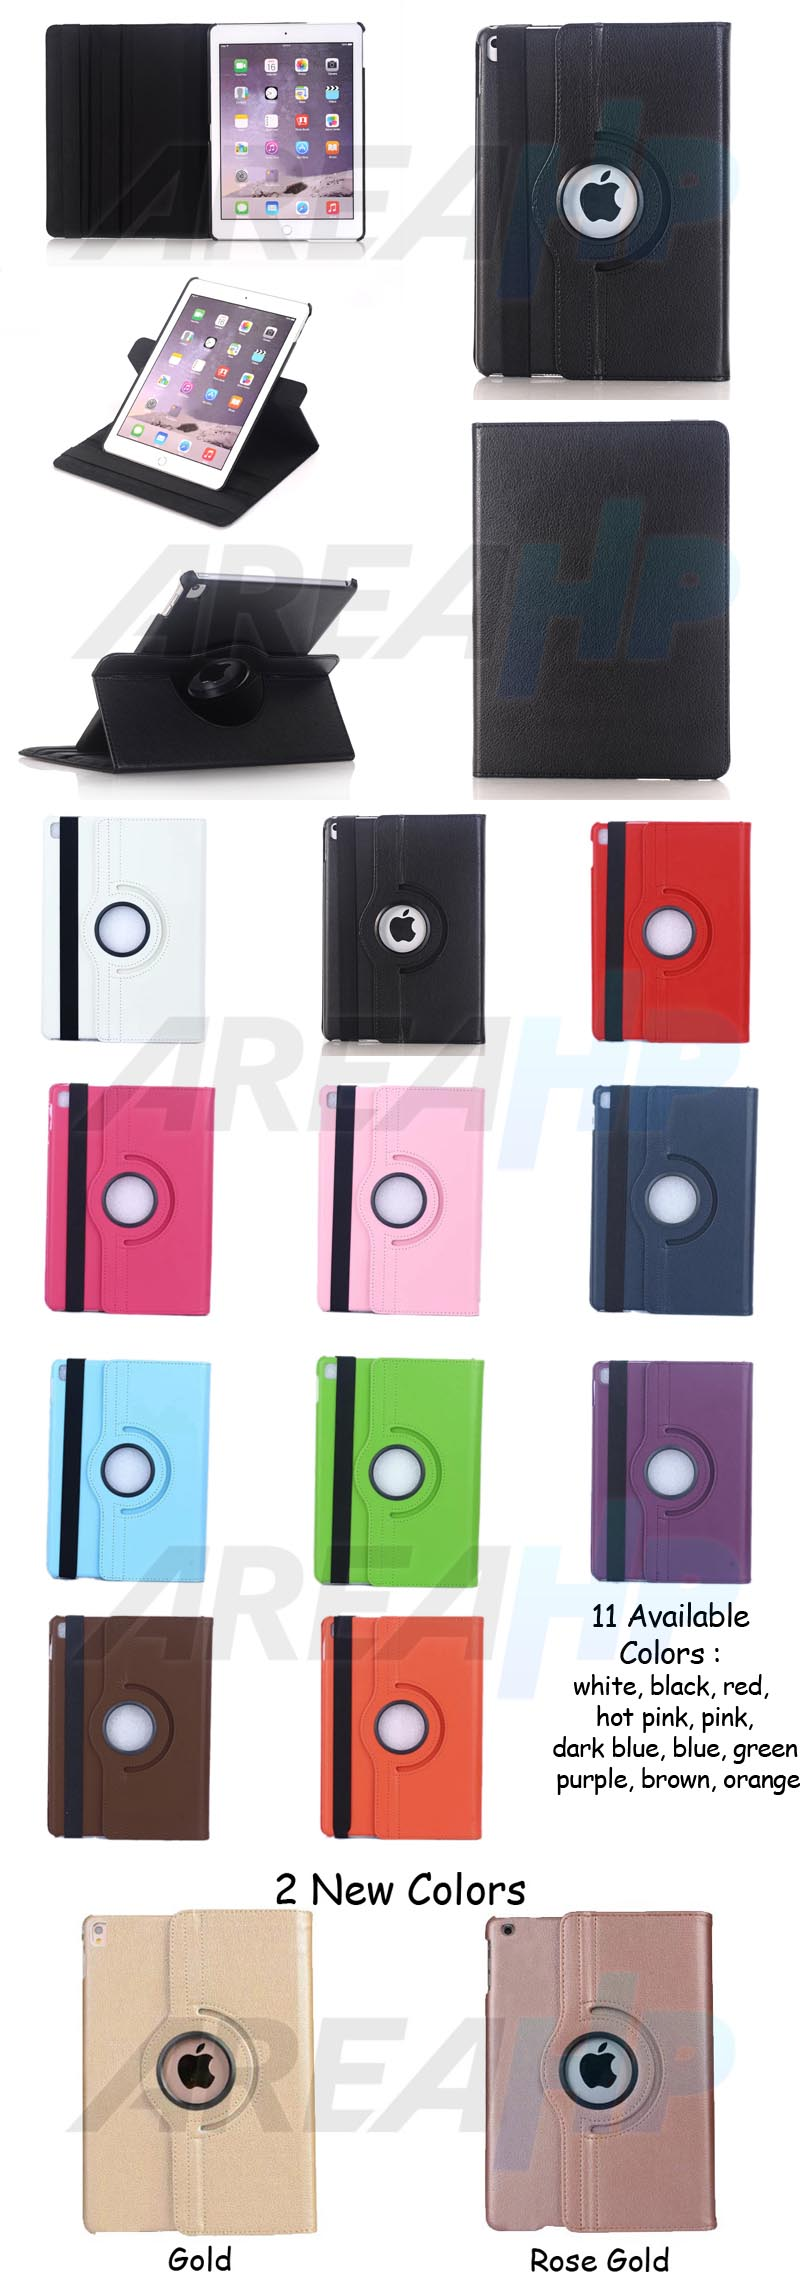 Rotate Case 360 (Leather) for iPad Mini 1, 2, 3 Overview